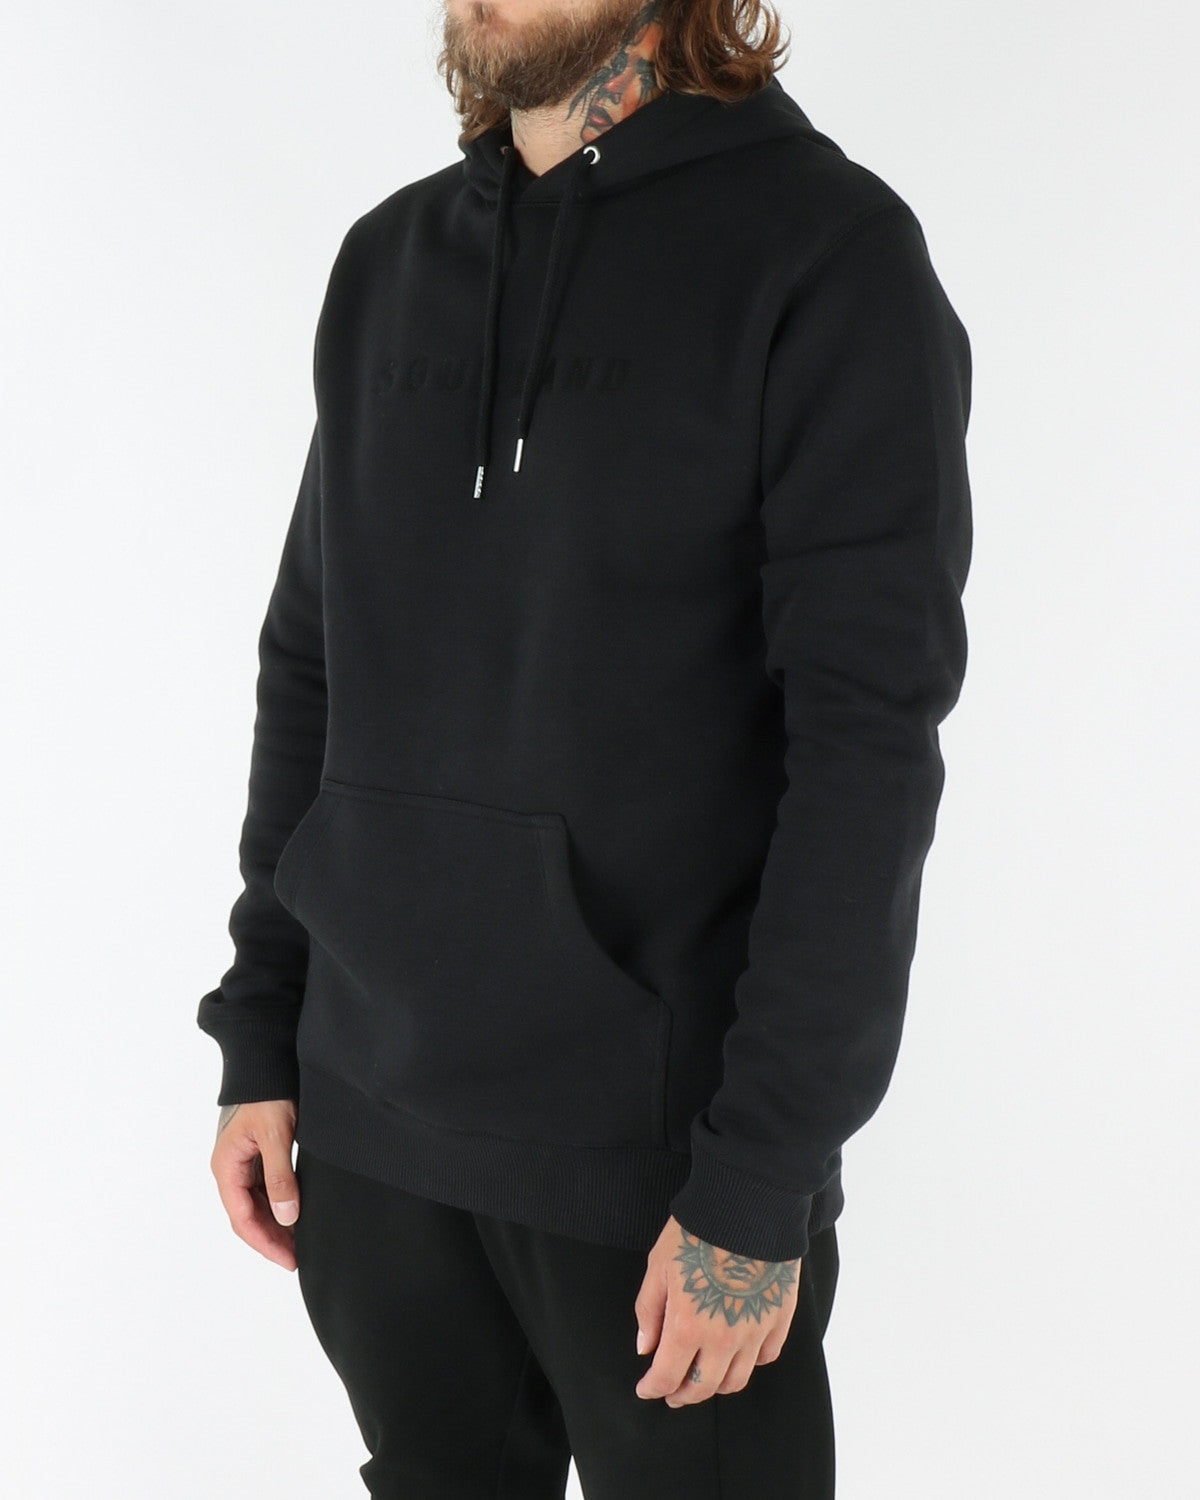 soulland_guy_hooded sweat_black_view_2_3